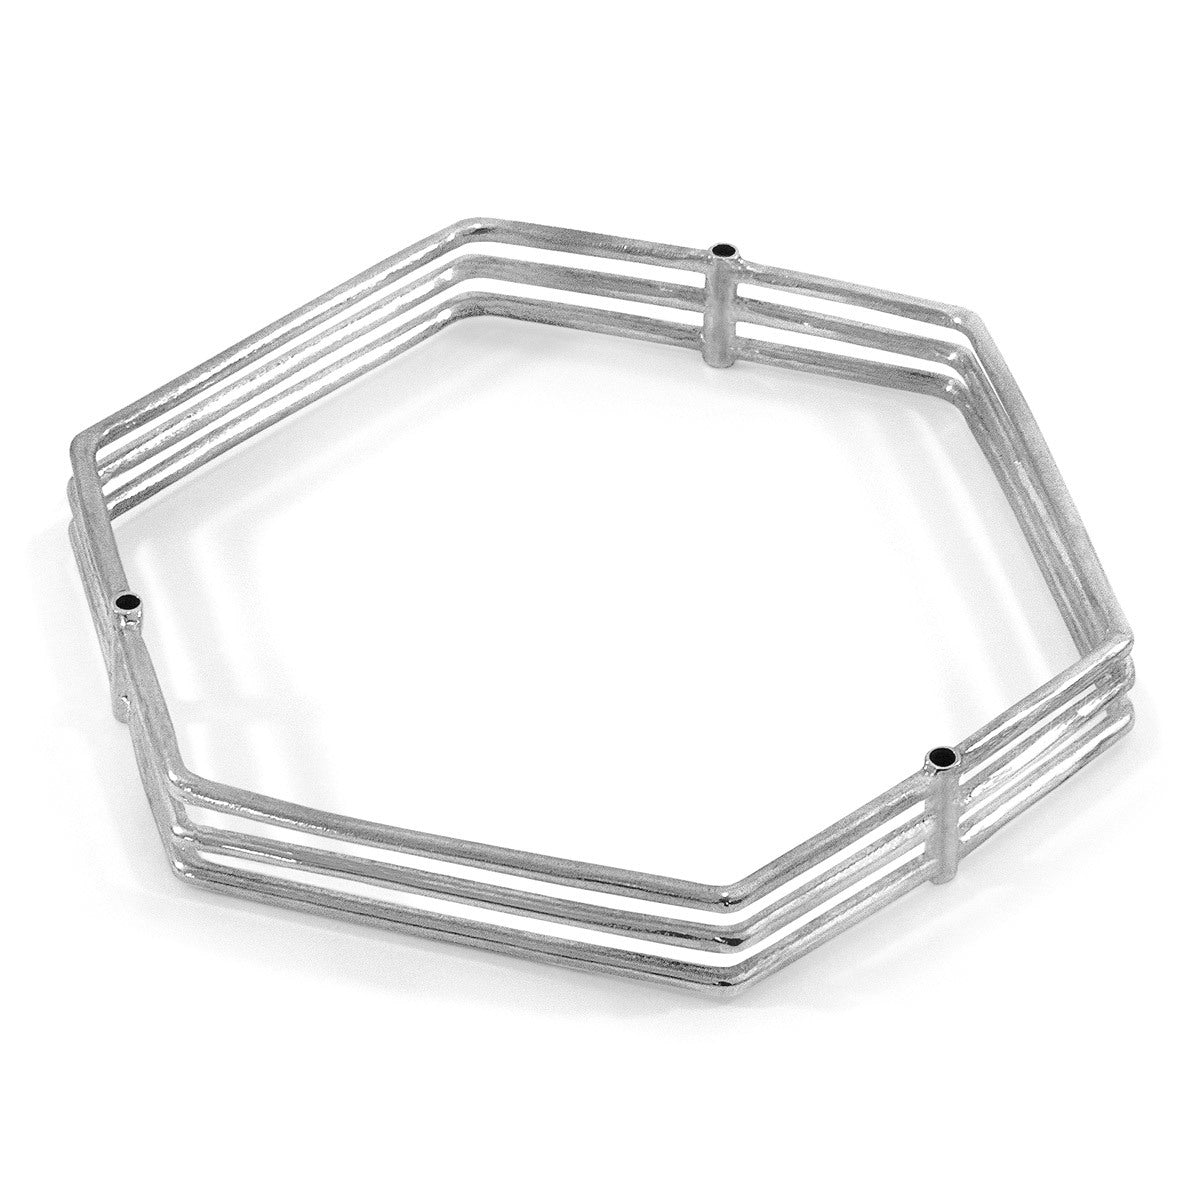 Walton Tri-Rail Maxi Geometric Silver Bangle